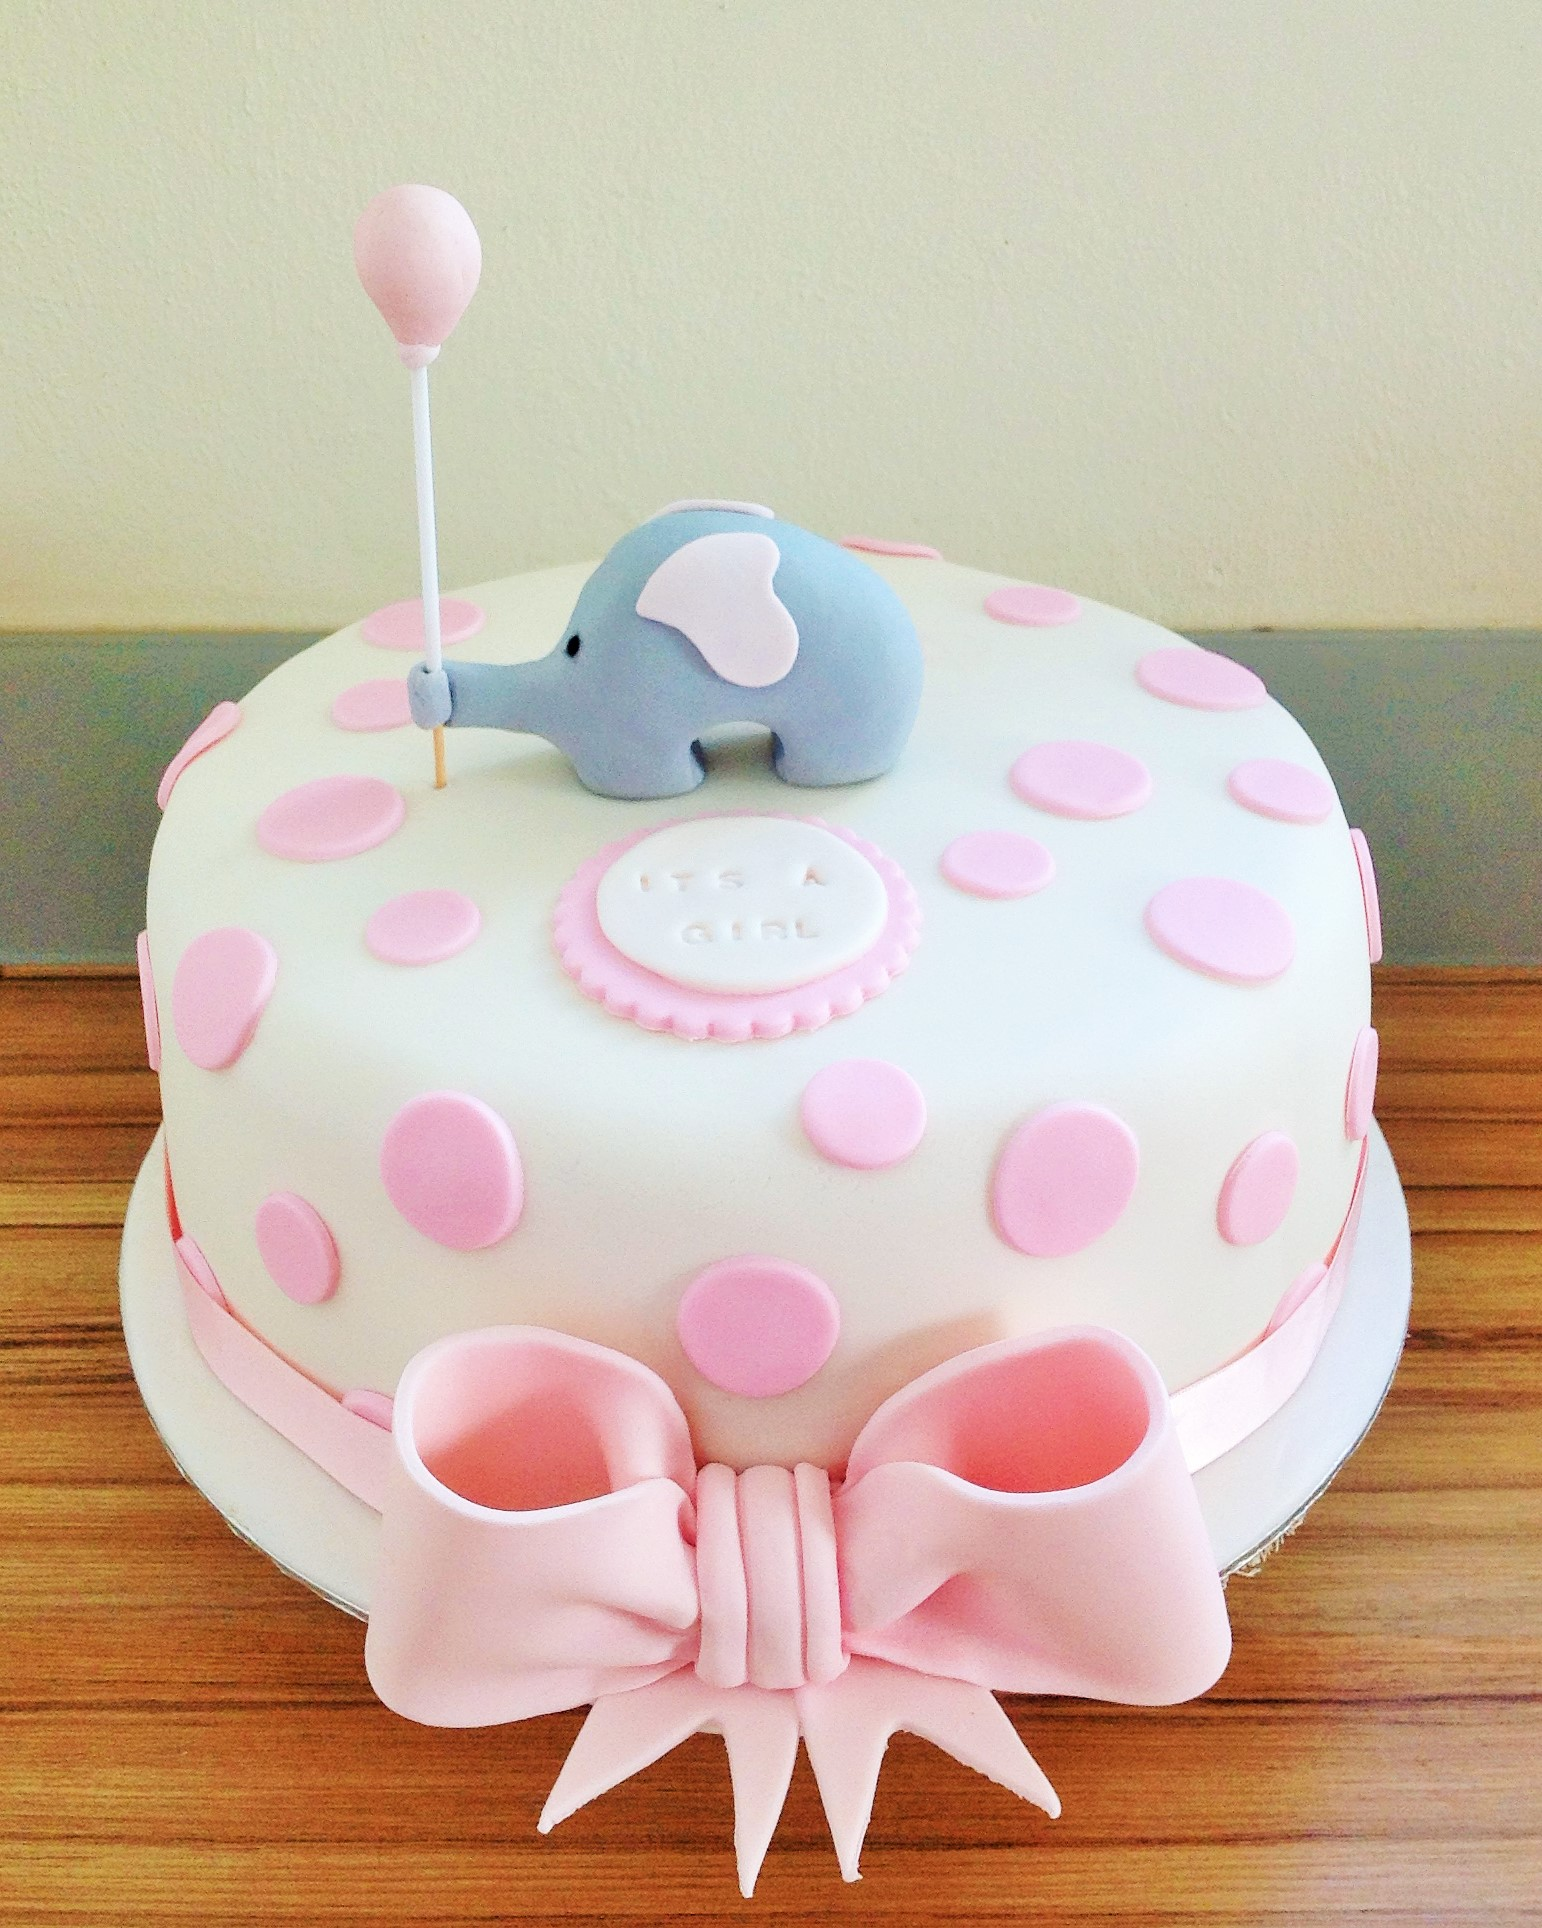 7 Ele Baby Shower Cakes Photo Chanel Baby Shower Cake Girl Baby